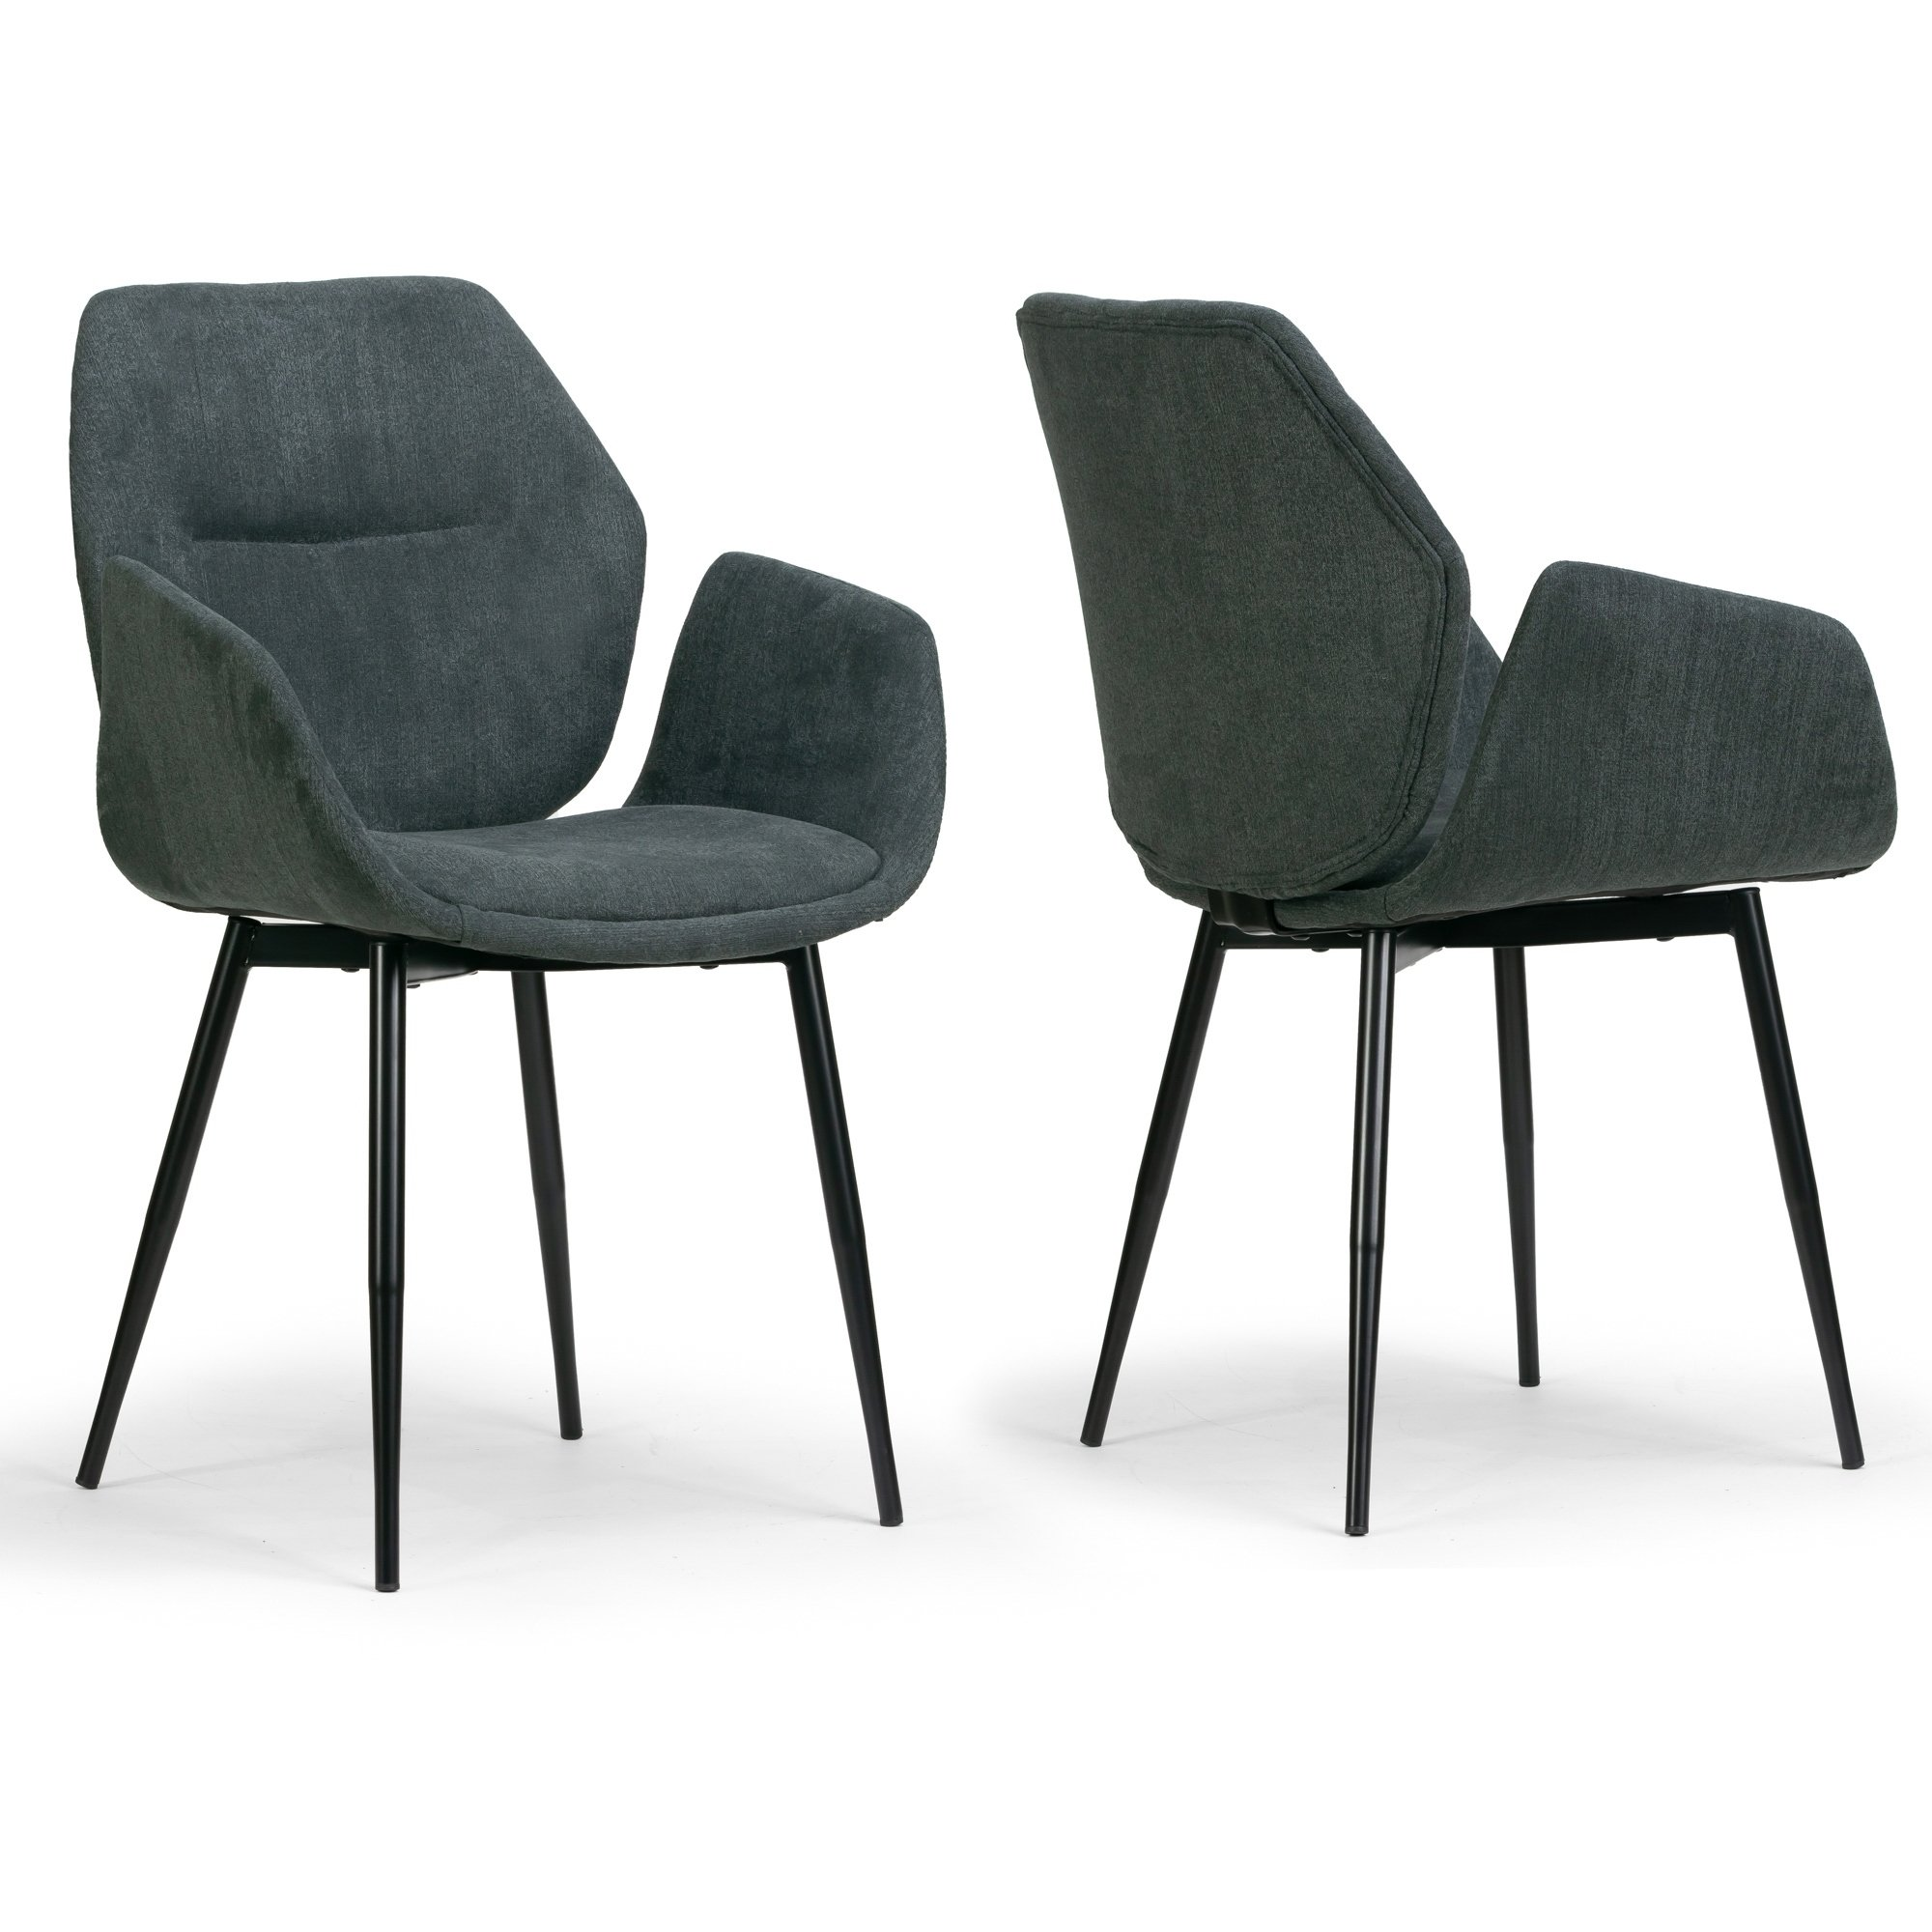 Amari Grey Velvety Fabric Dining Chair With Black Metal Legs Set Of 2 Glamour Dining Chairs Side Chairs Dining Fabric Dining Chairs